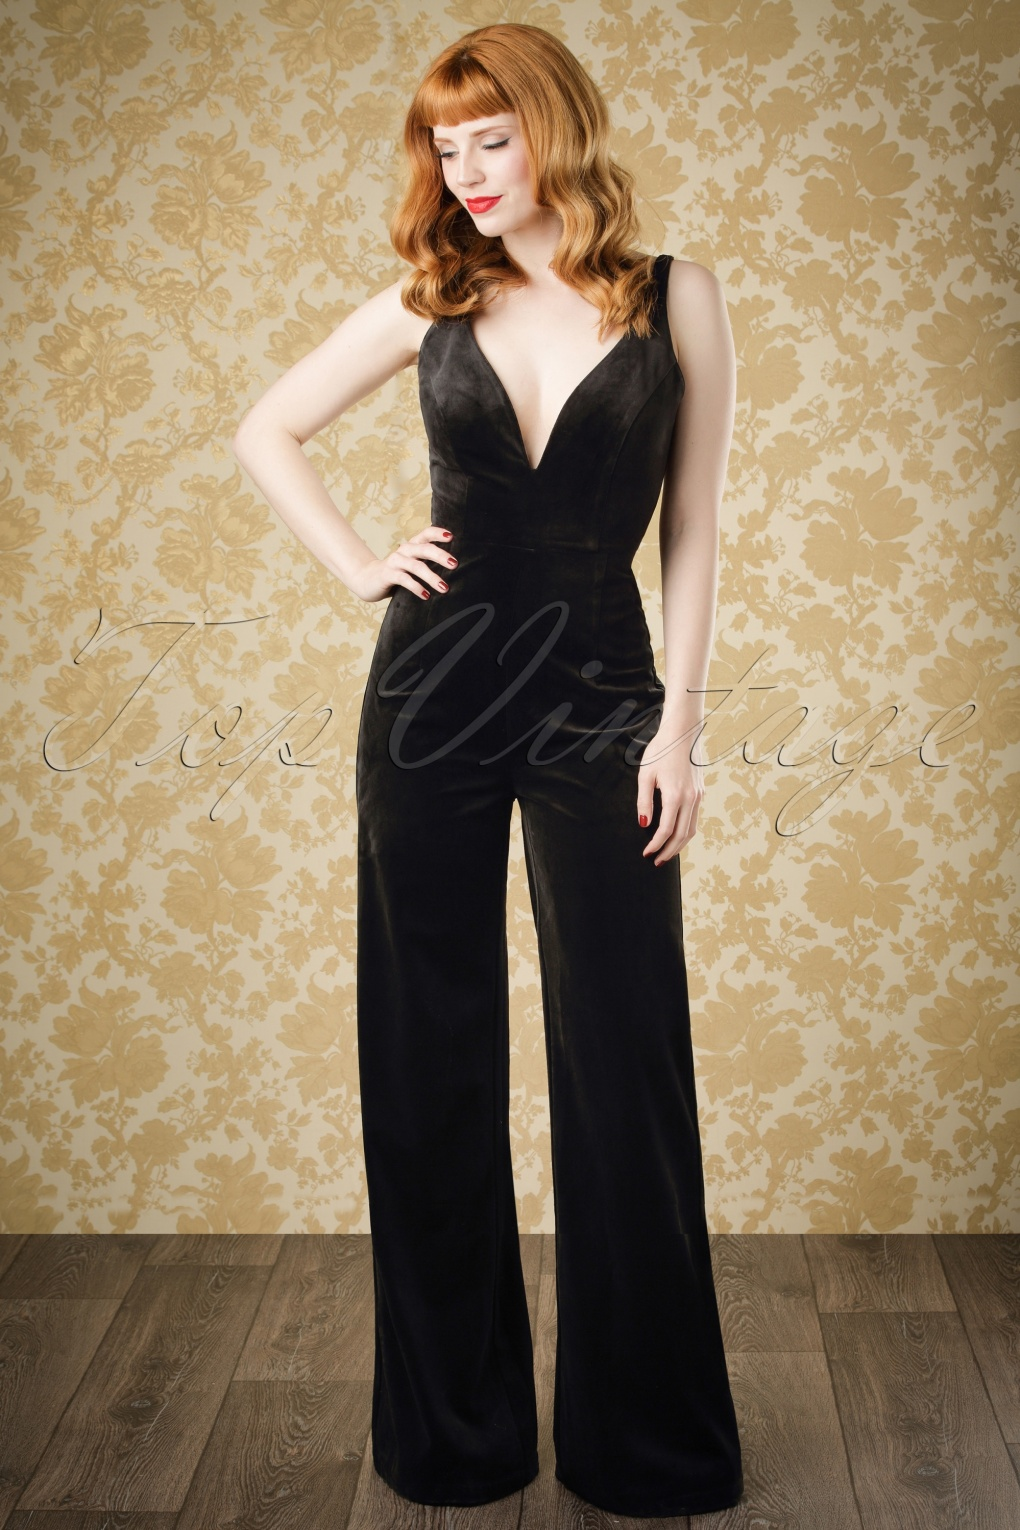 Vintage High Waisted Trousers, Sailor Pants, Jeans 70s Sasha Velvet Jumpsuit in Black £71.88 AT vintagedancer.com